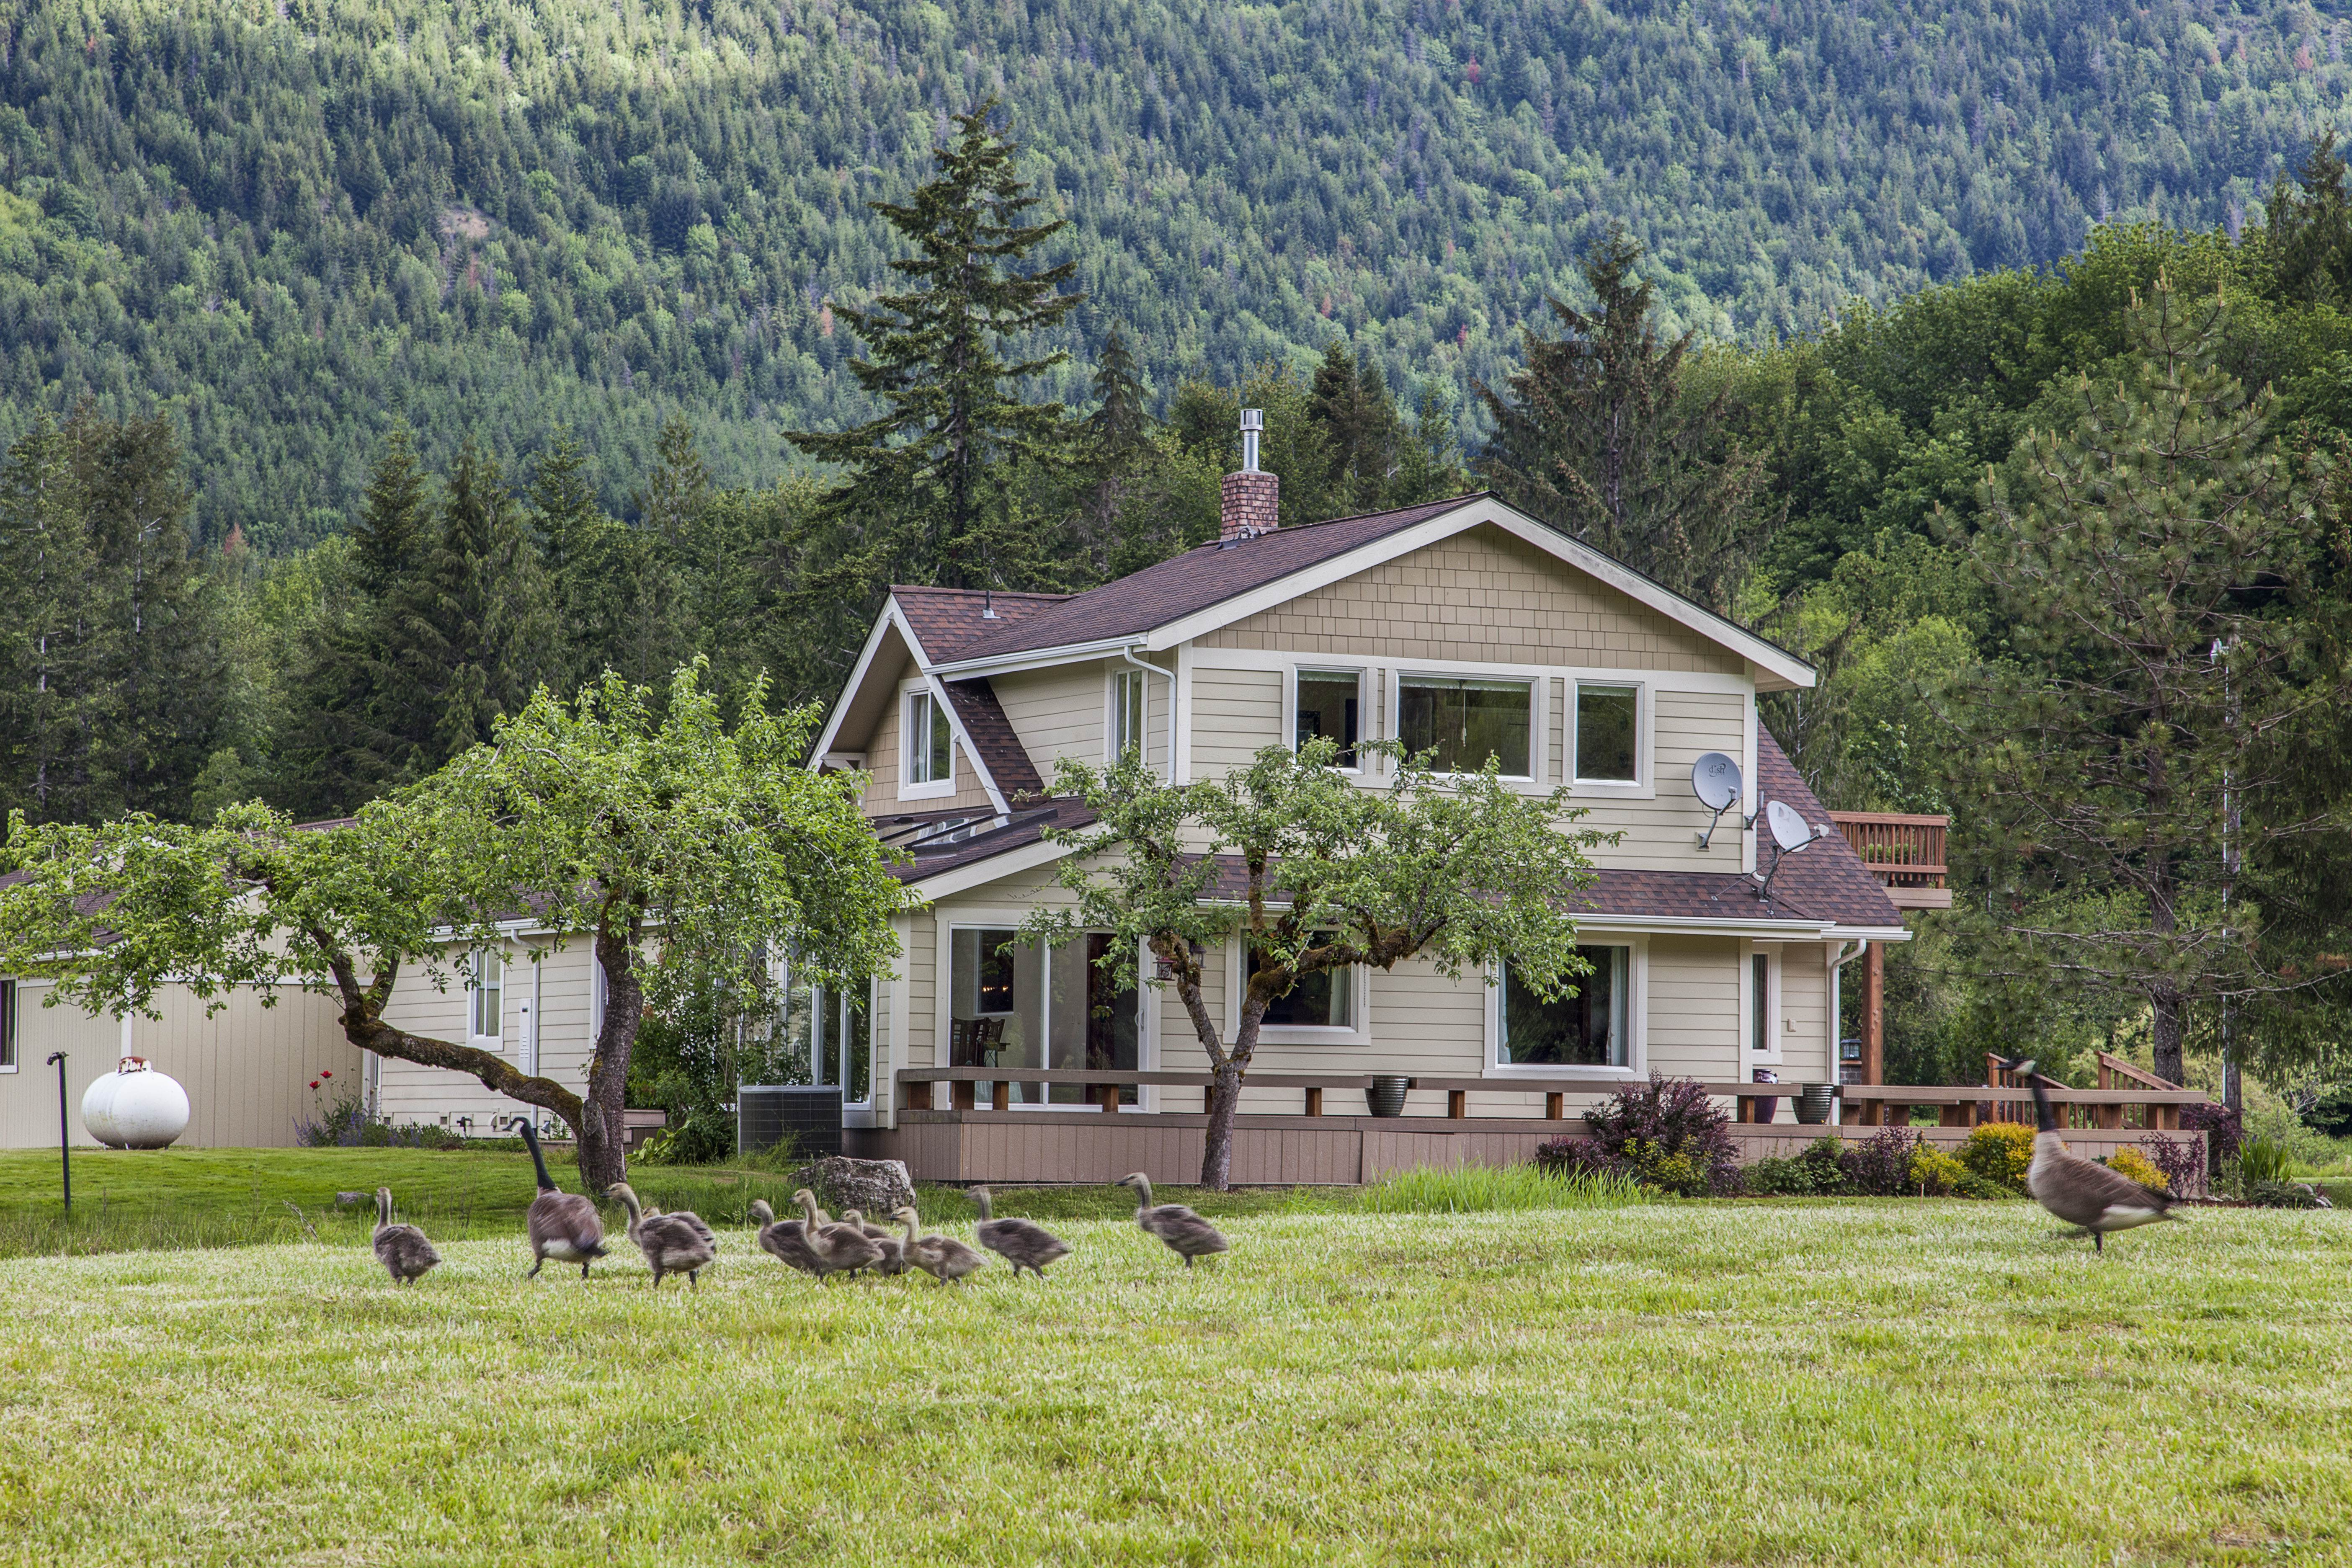 Additional photo for property listing at Spring Lakes Farm 237477 W Highway 101 Port Angeles, Washington 98363 United States